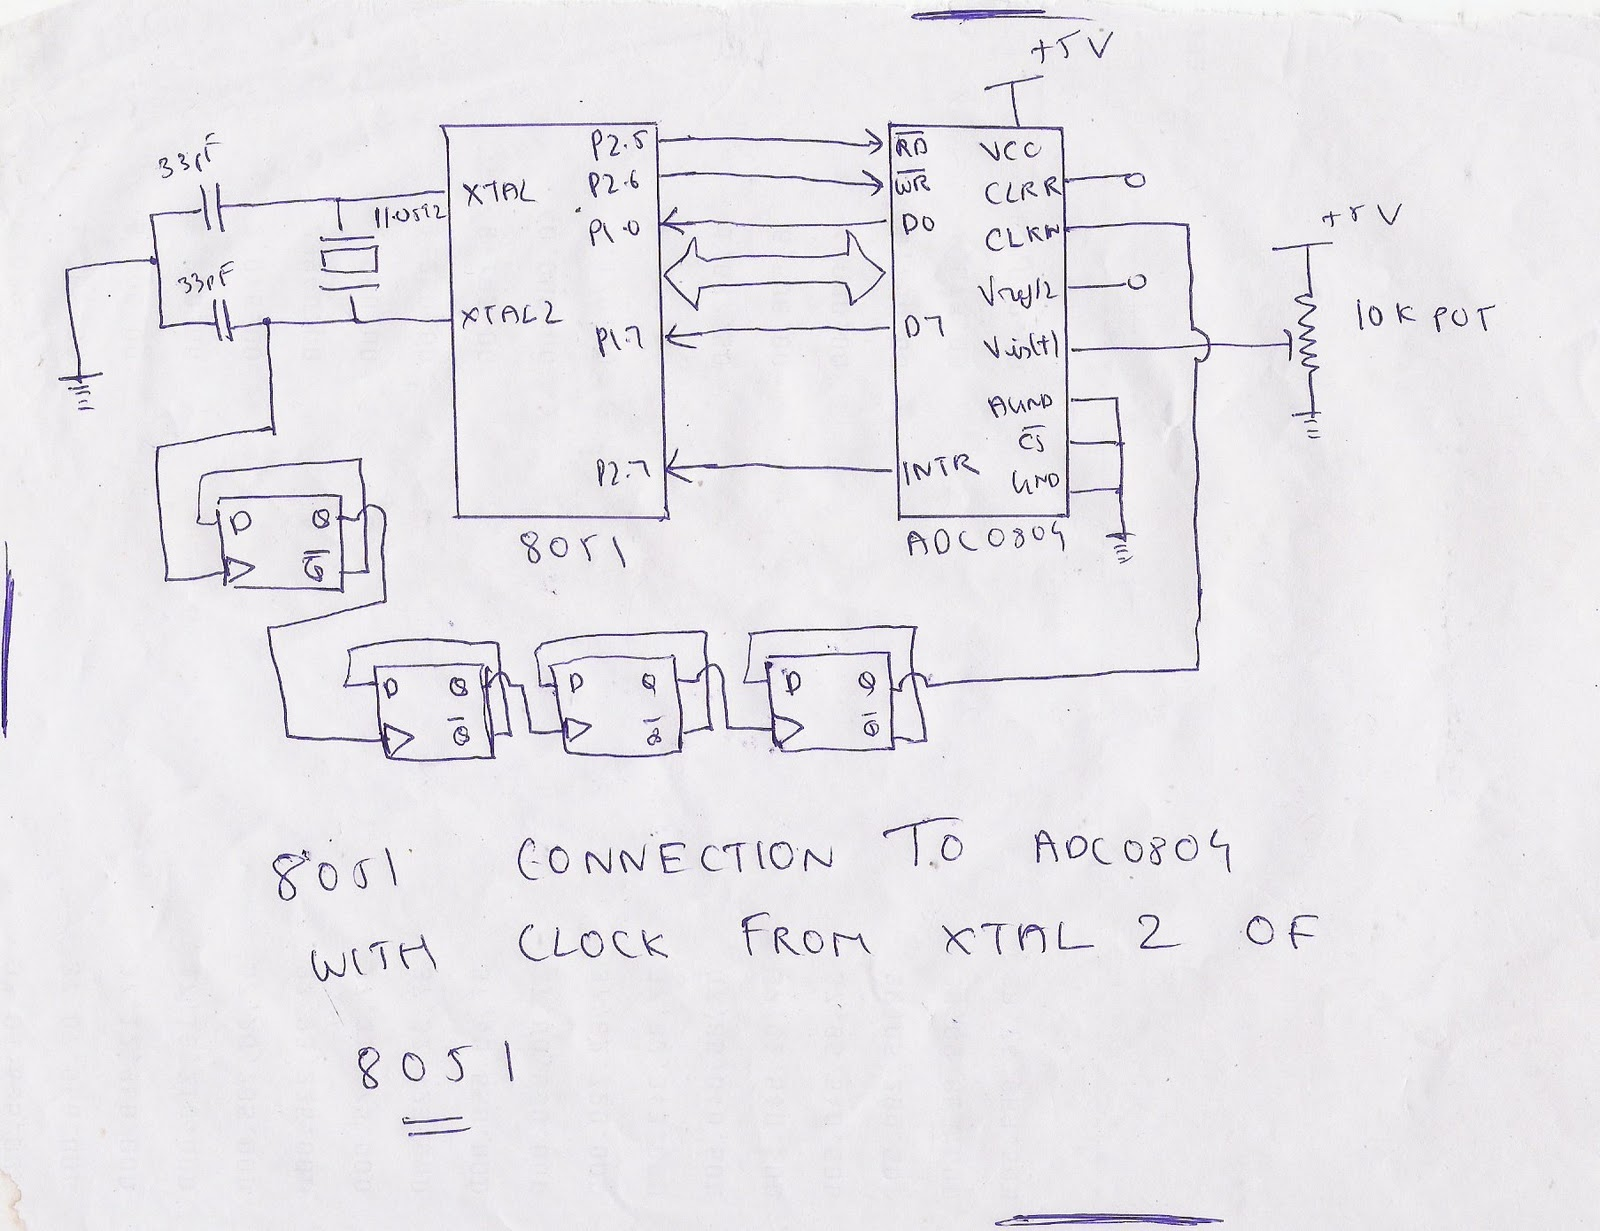 Microprocessor And Microcontroller Clock Source For Adc0804 8051 Addressing Modes With Crystal Clocking